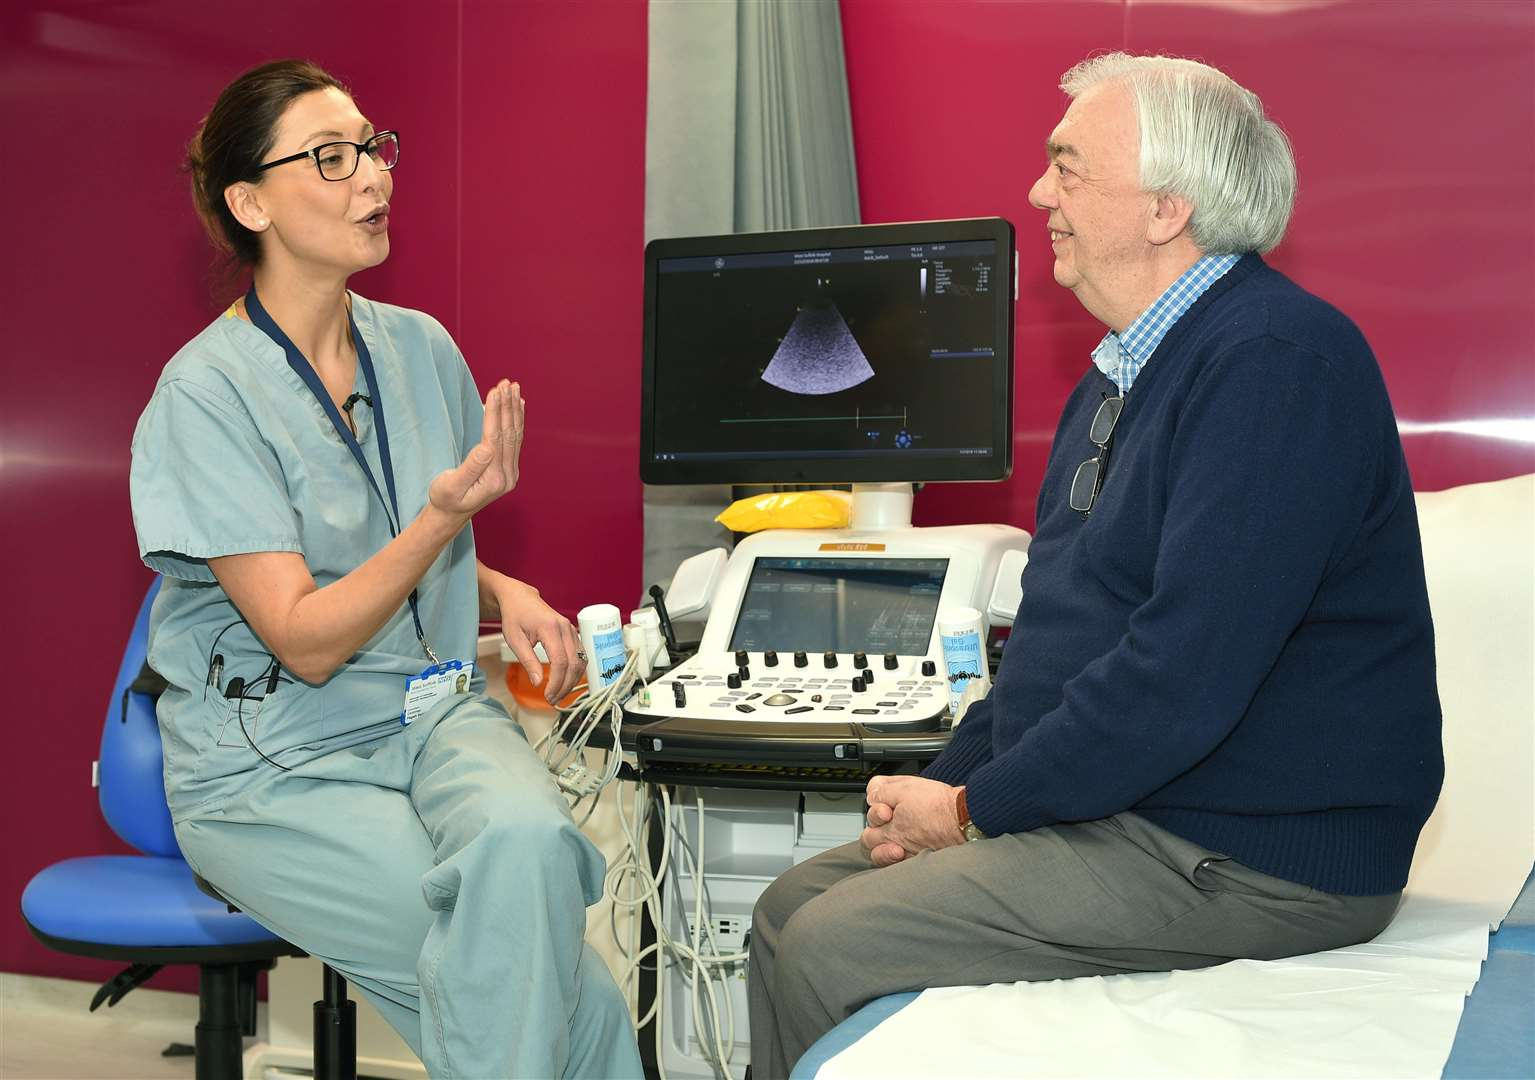 Dr Pegah Salahshouri, cardiology consultant at the West Suffolk NHS Foundation Trust talking with Tony Nunn, one of the first patients to have a pacemaker fitted in the new cardiac centre at West Suffolk Hospital.